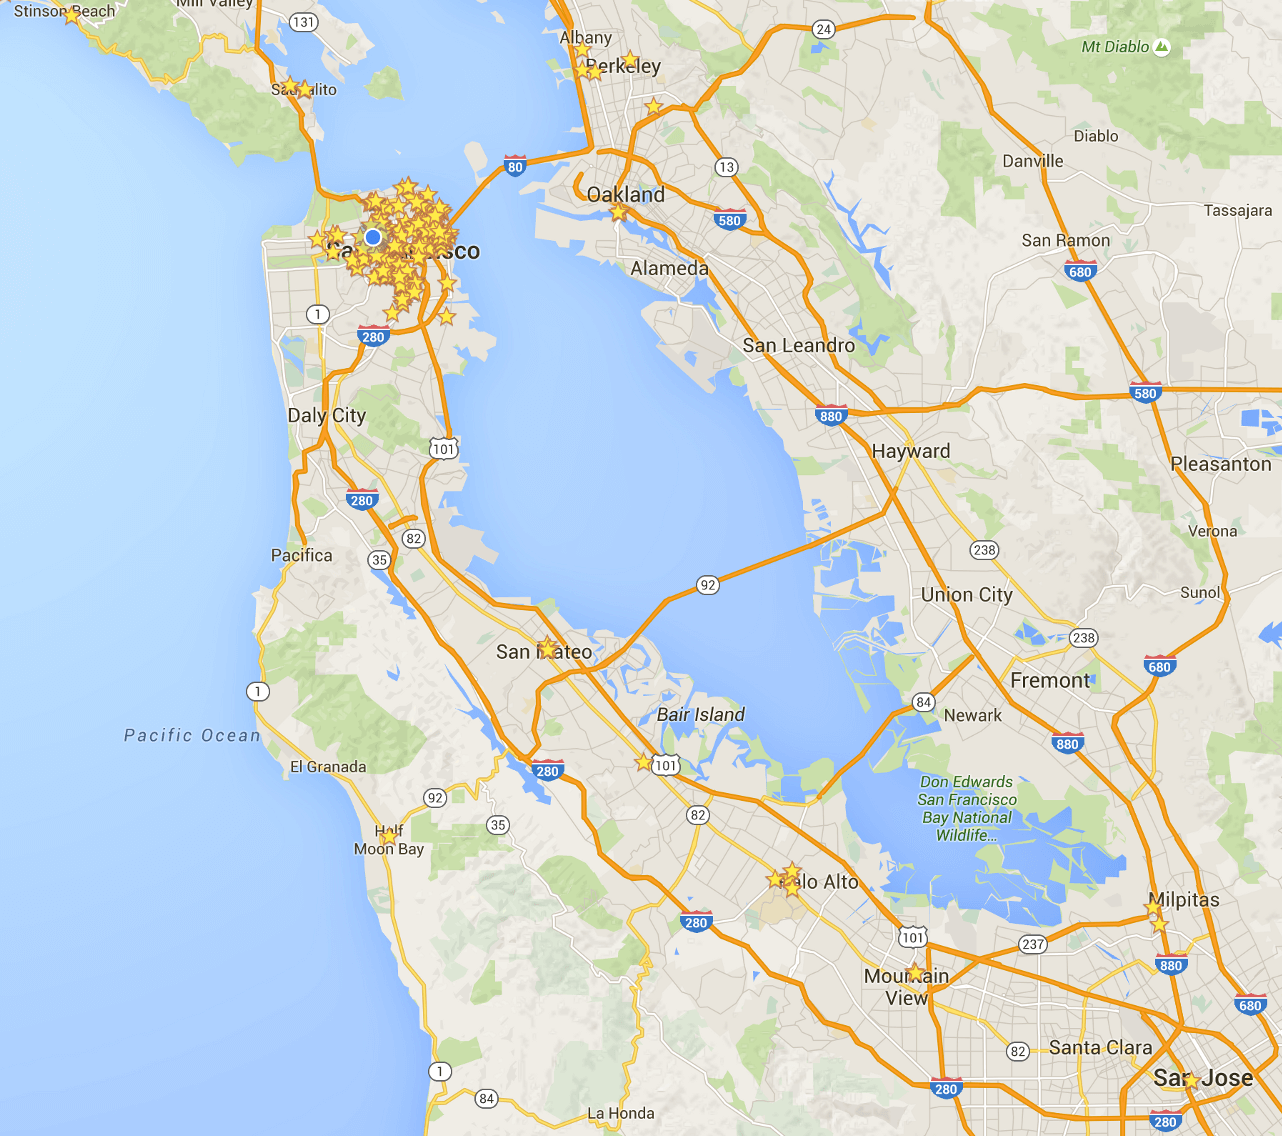 A map of the Bay Area with stars on it